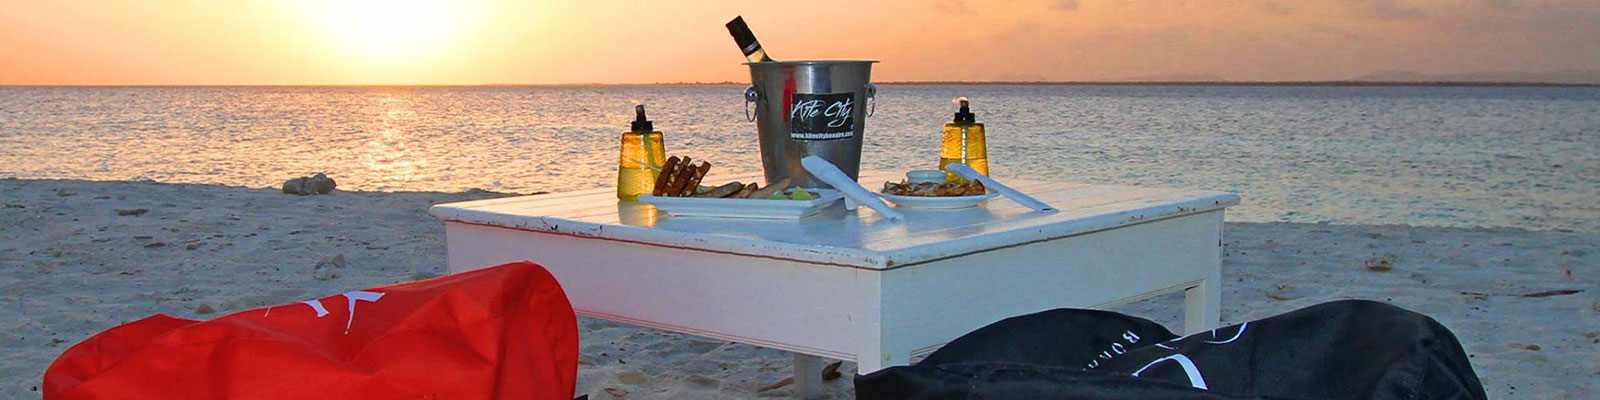 kite-city-food-truck-bonaire-image-slider-6